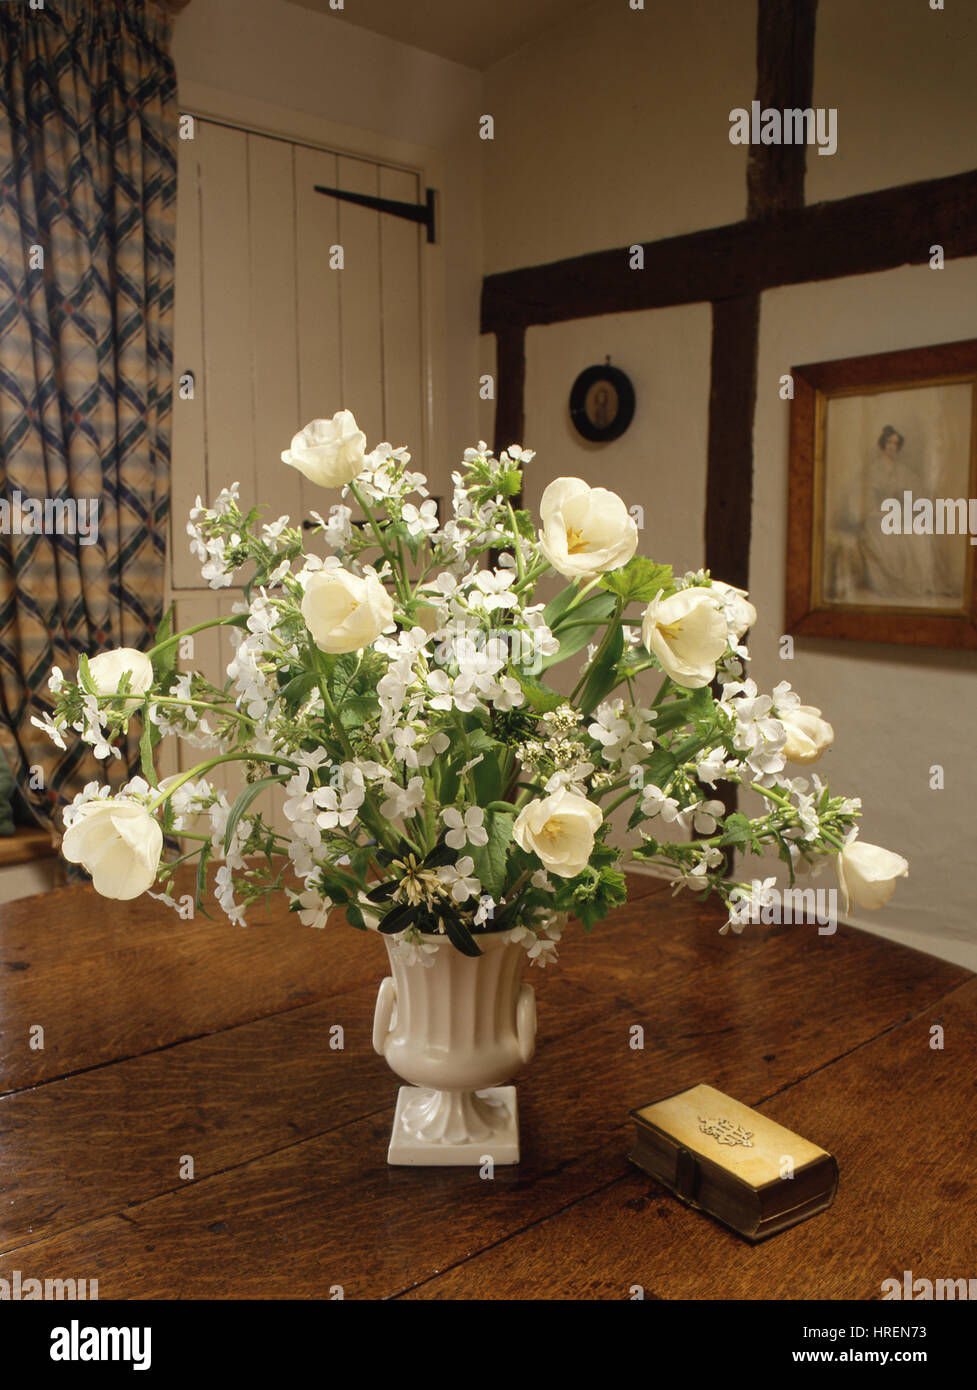 All White Flower Arrangement In A English Cottage Setting Stock